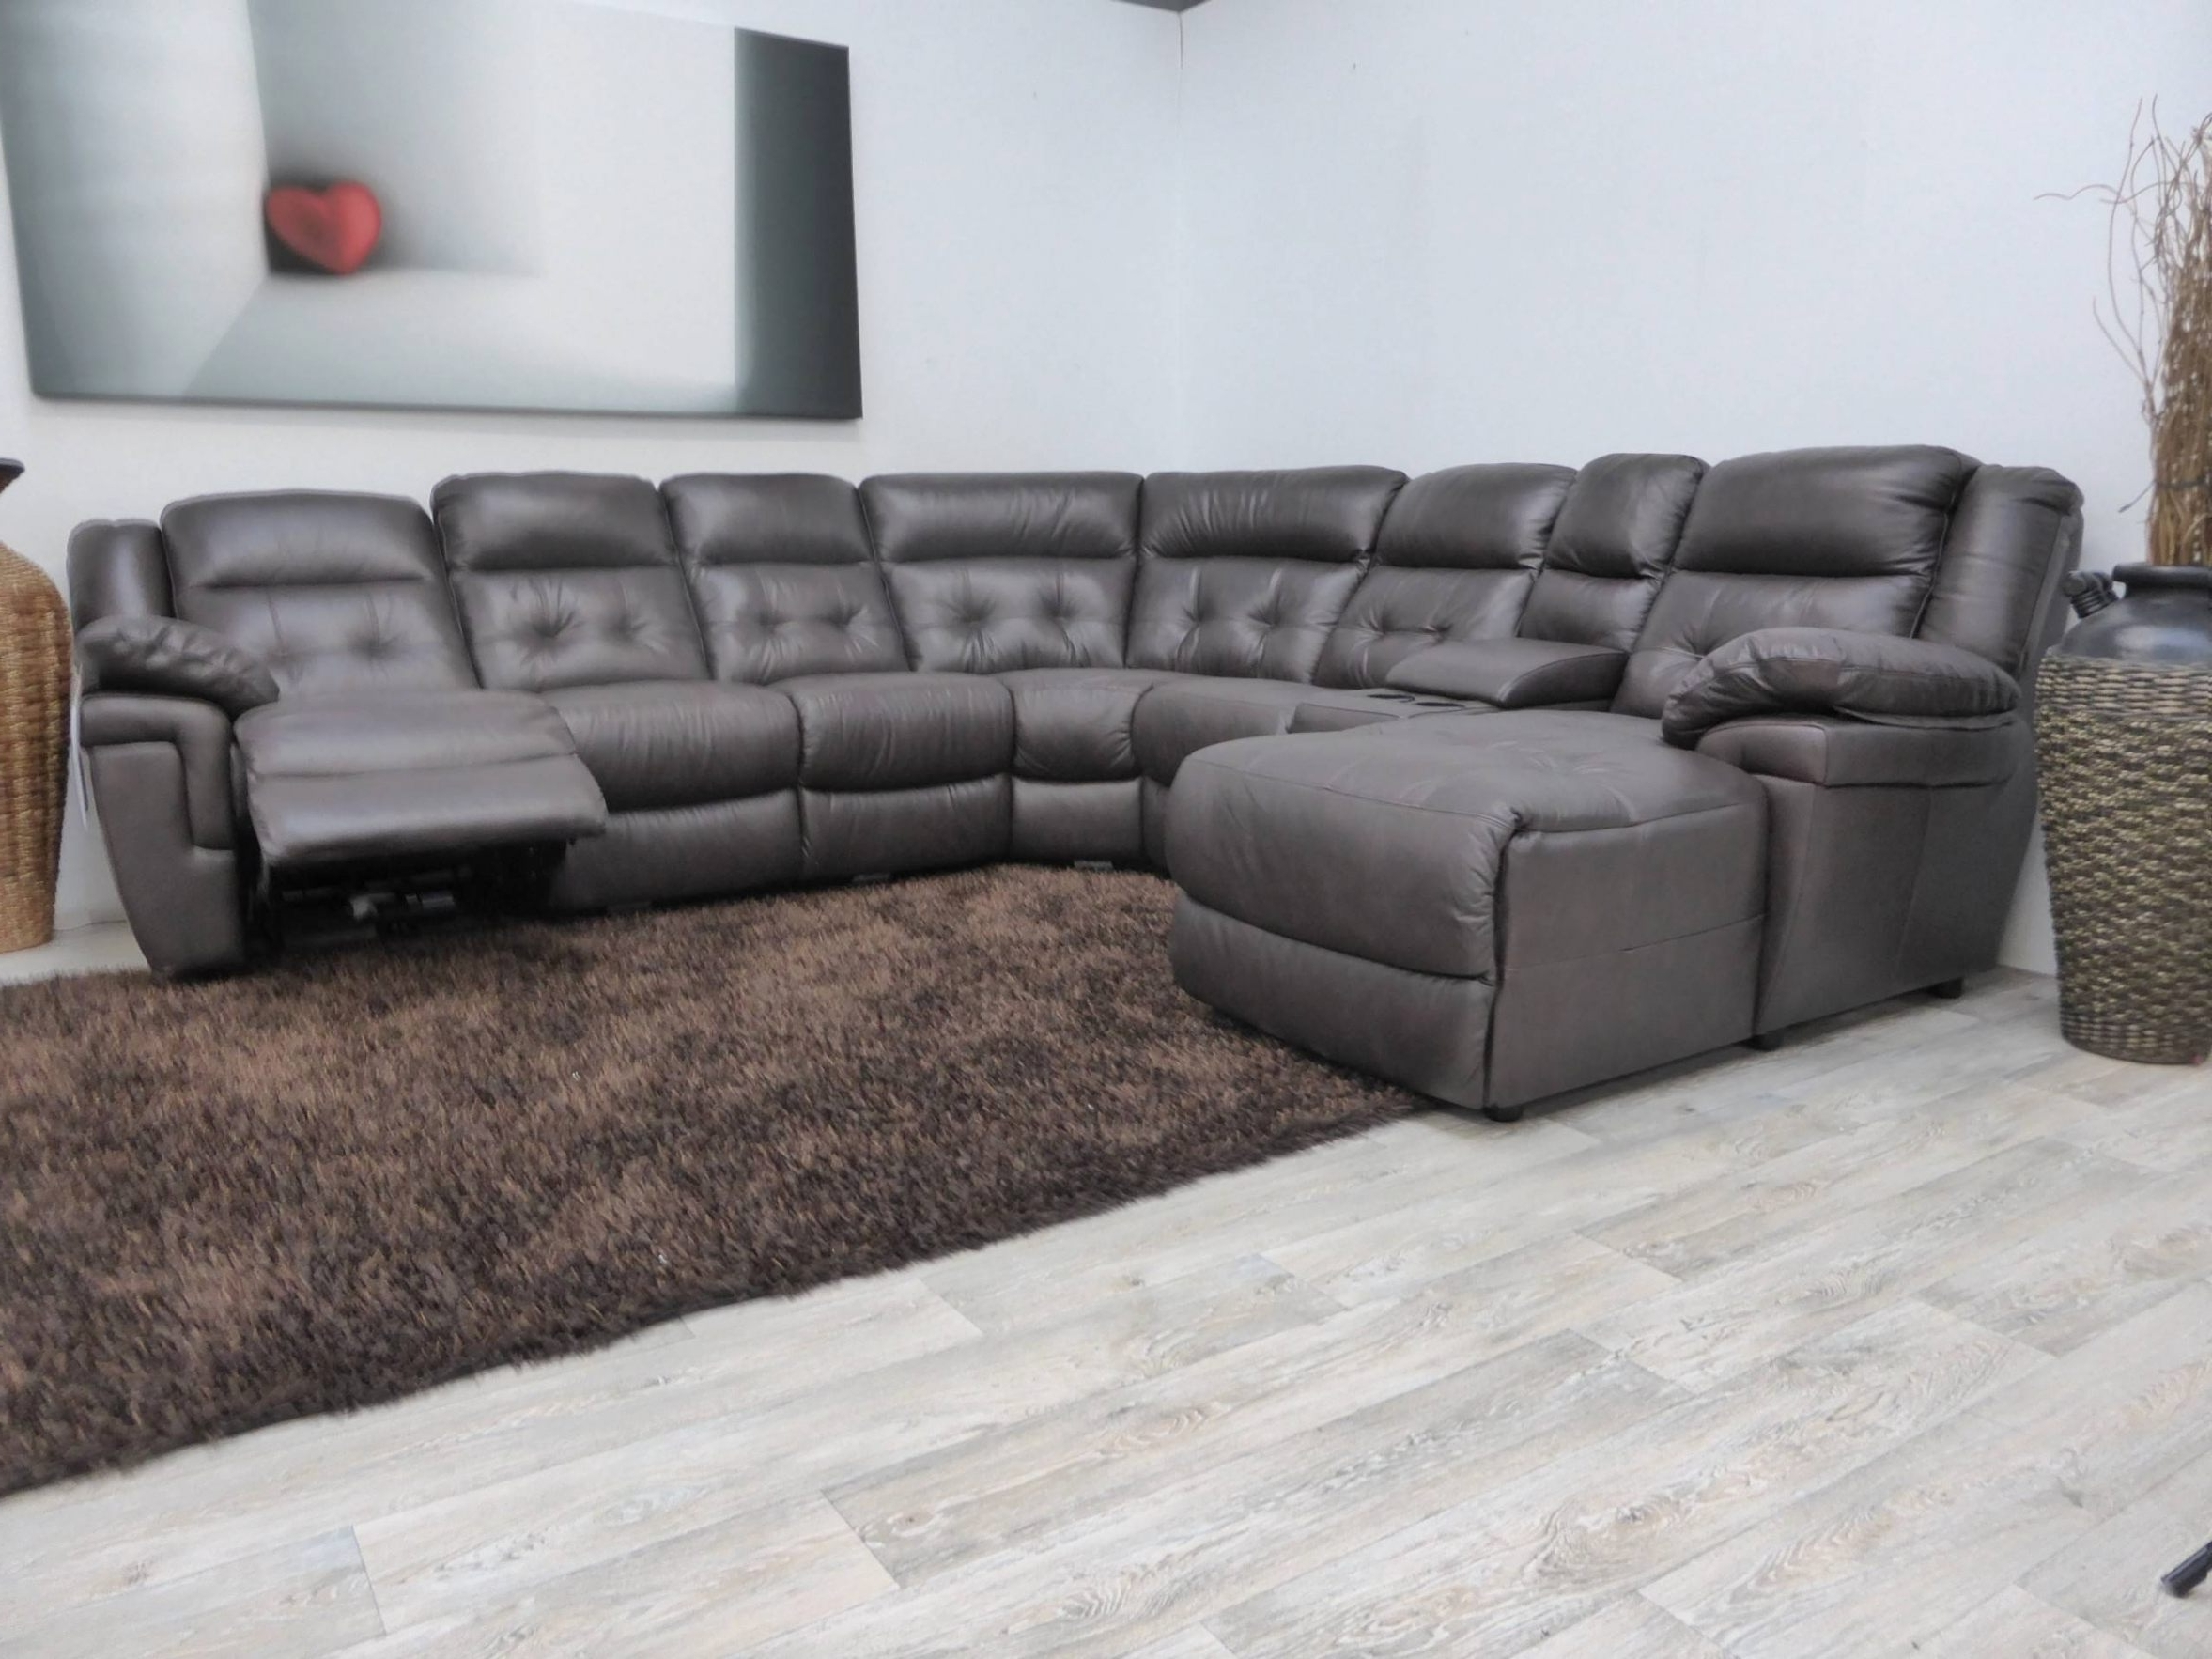 Grampysworld Within Sectional Sofas At Craigslist (View 10 of 20)